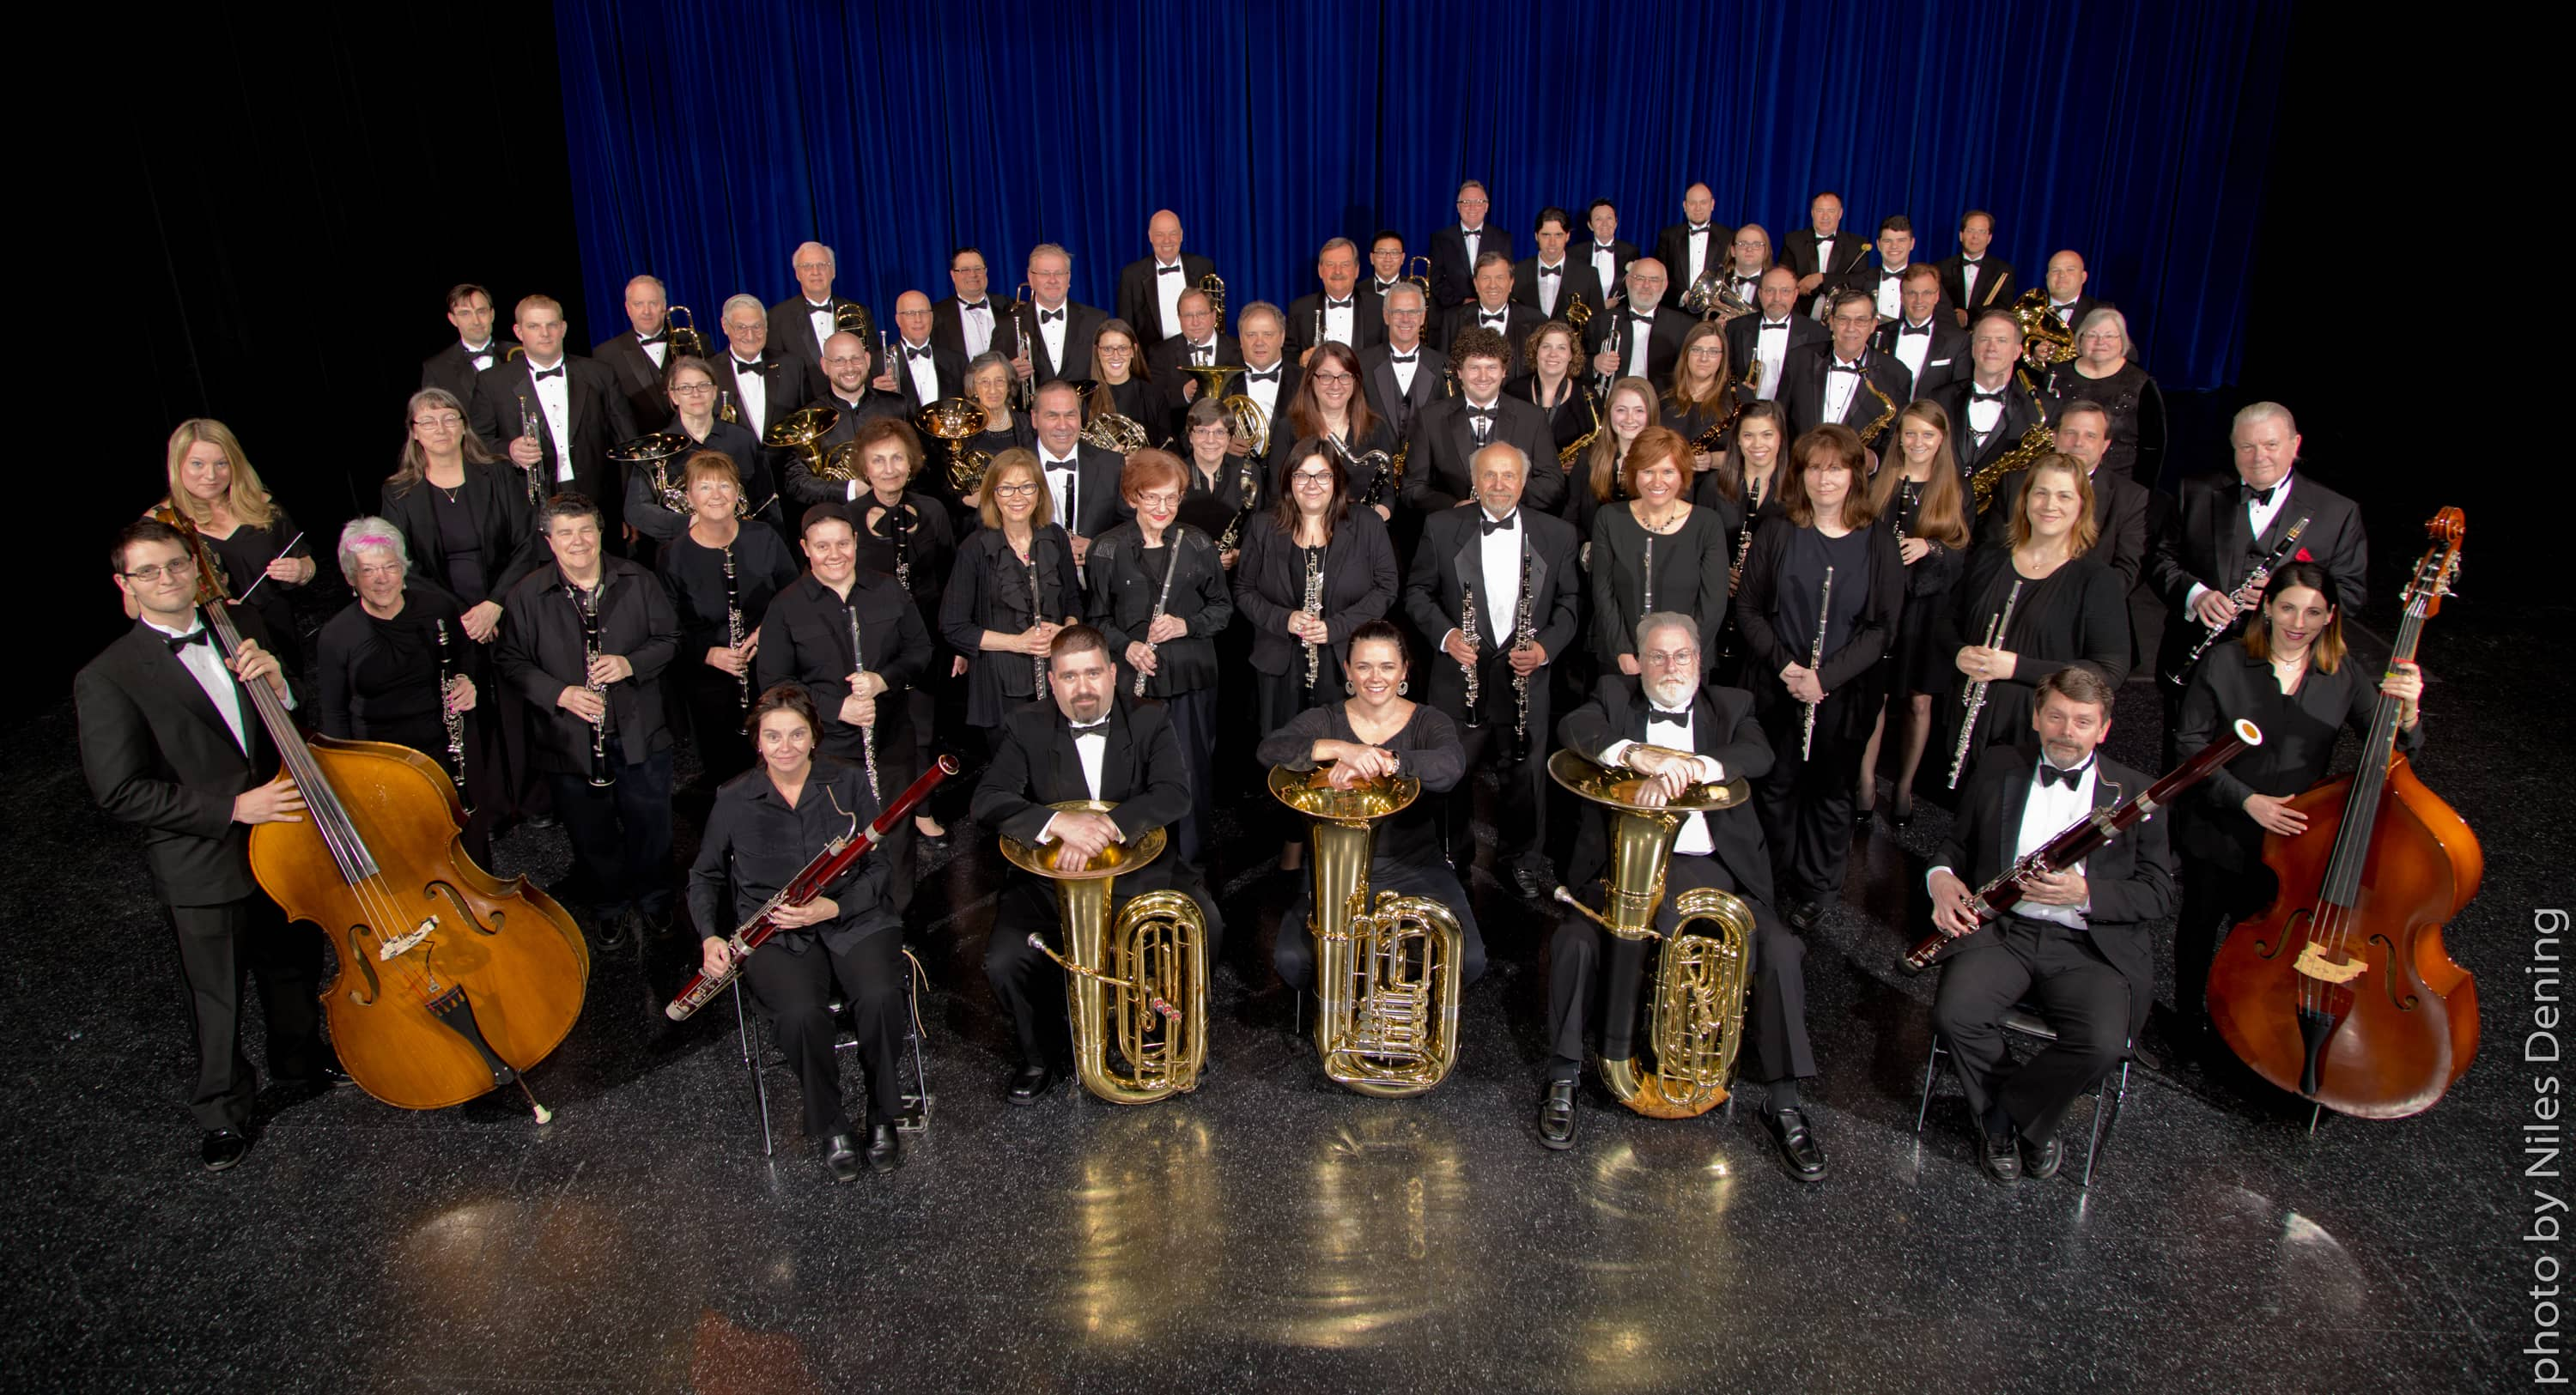 Buffalo Niagara Concert Band - 2017 Photo by Niles Dening